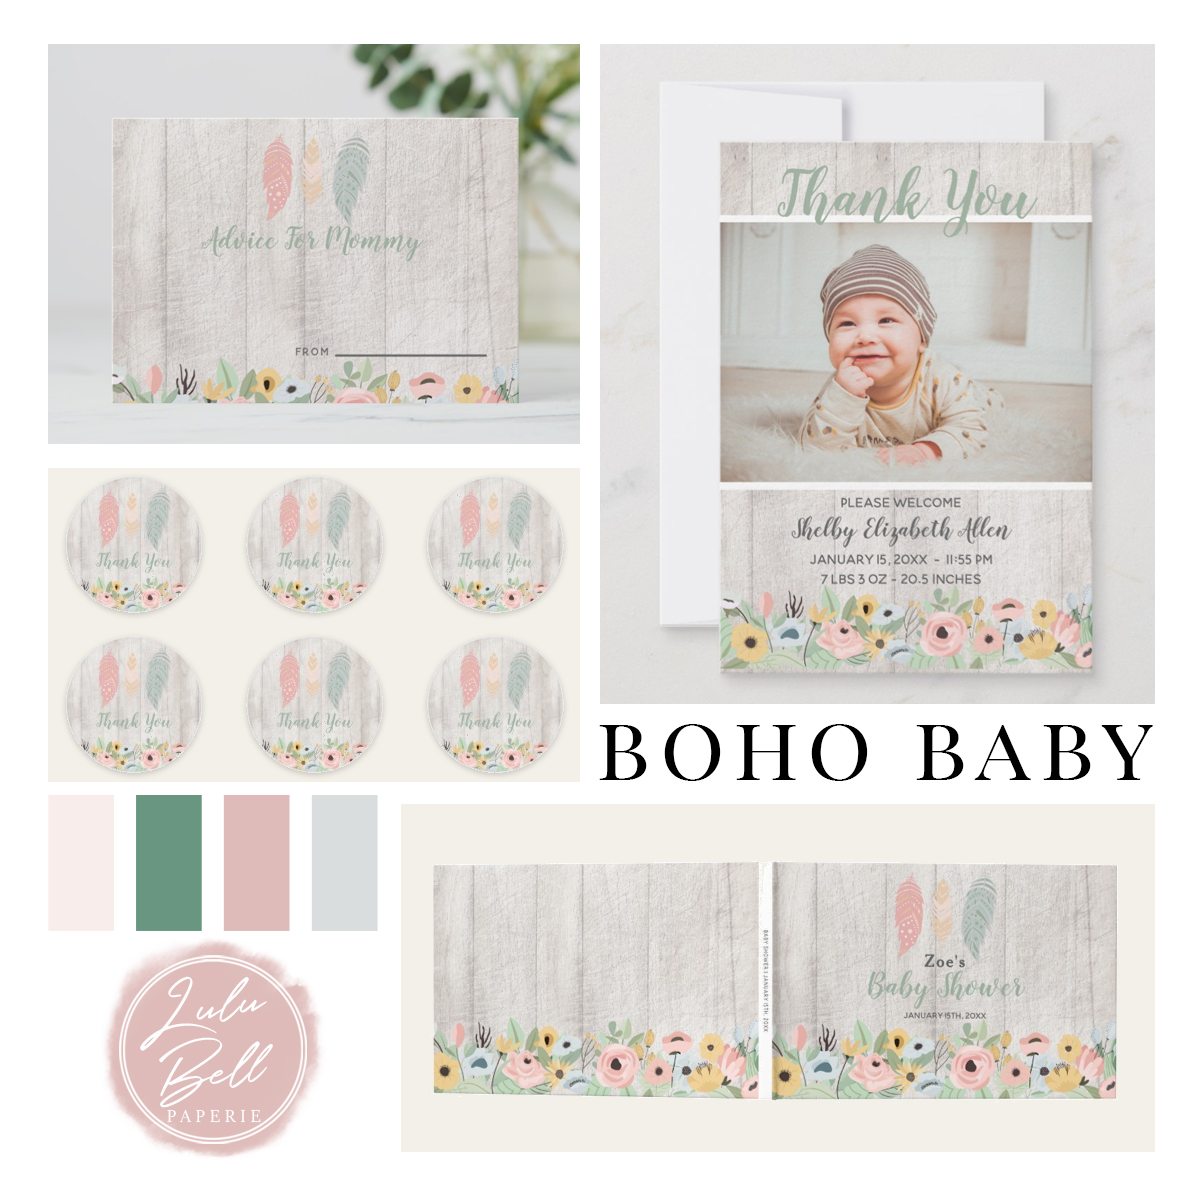 Coordinating Collection of Boho Baby Nursery Decor, Shower Invitations Party Suite, and Paint Color Palettes for Your Baby Girl. With Feathers, Deer, Flowers, Wood, and Birds. In Pink, Blush, Green, and Pale Gray.Coordinating Collection of Boho Baby Nursery Decor, Shower Invitations Party Suite, and Paint Color Palettes for Your Baby Girl. With Feathers, Deer, Flowers, Wood, and Birds. In Pink, Blush, Green, and Pale Gray.